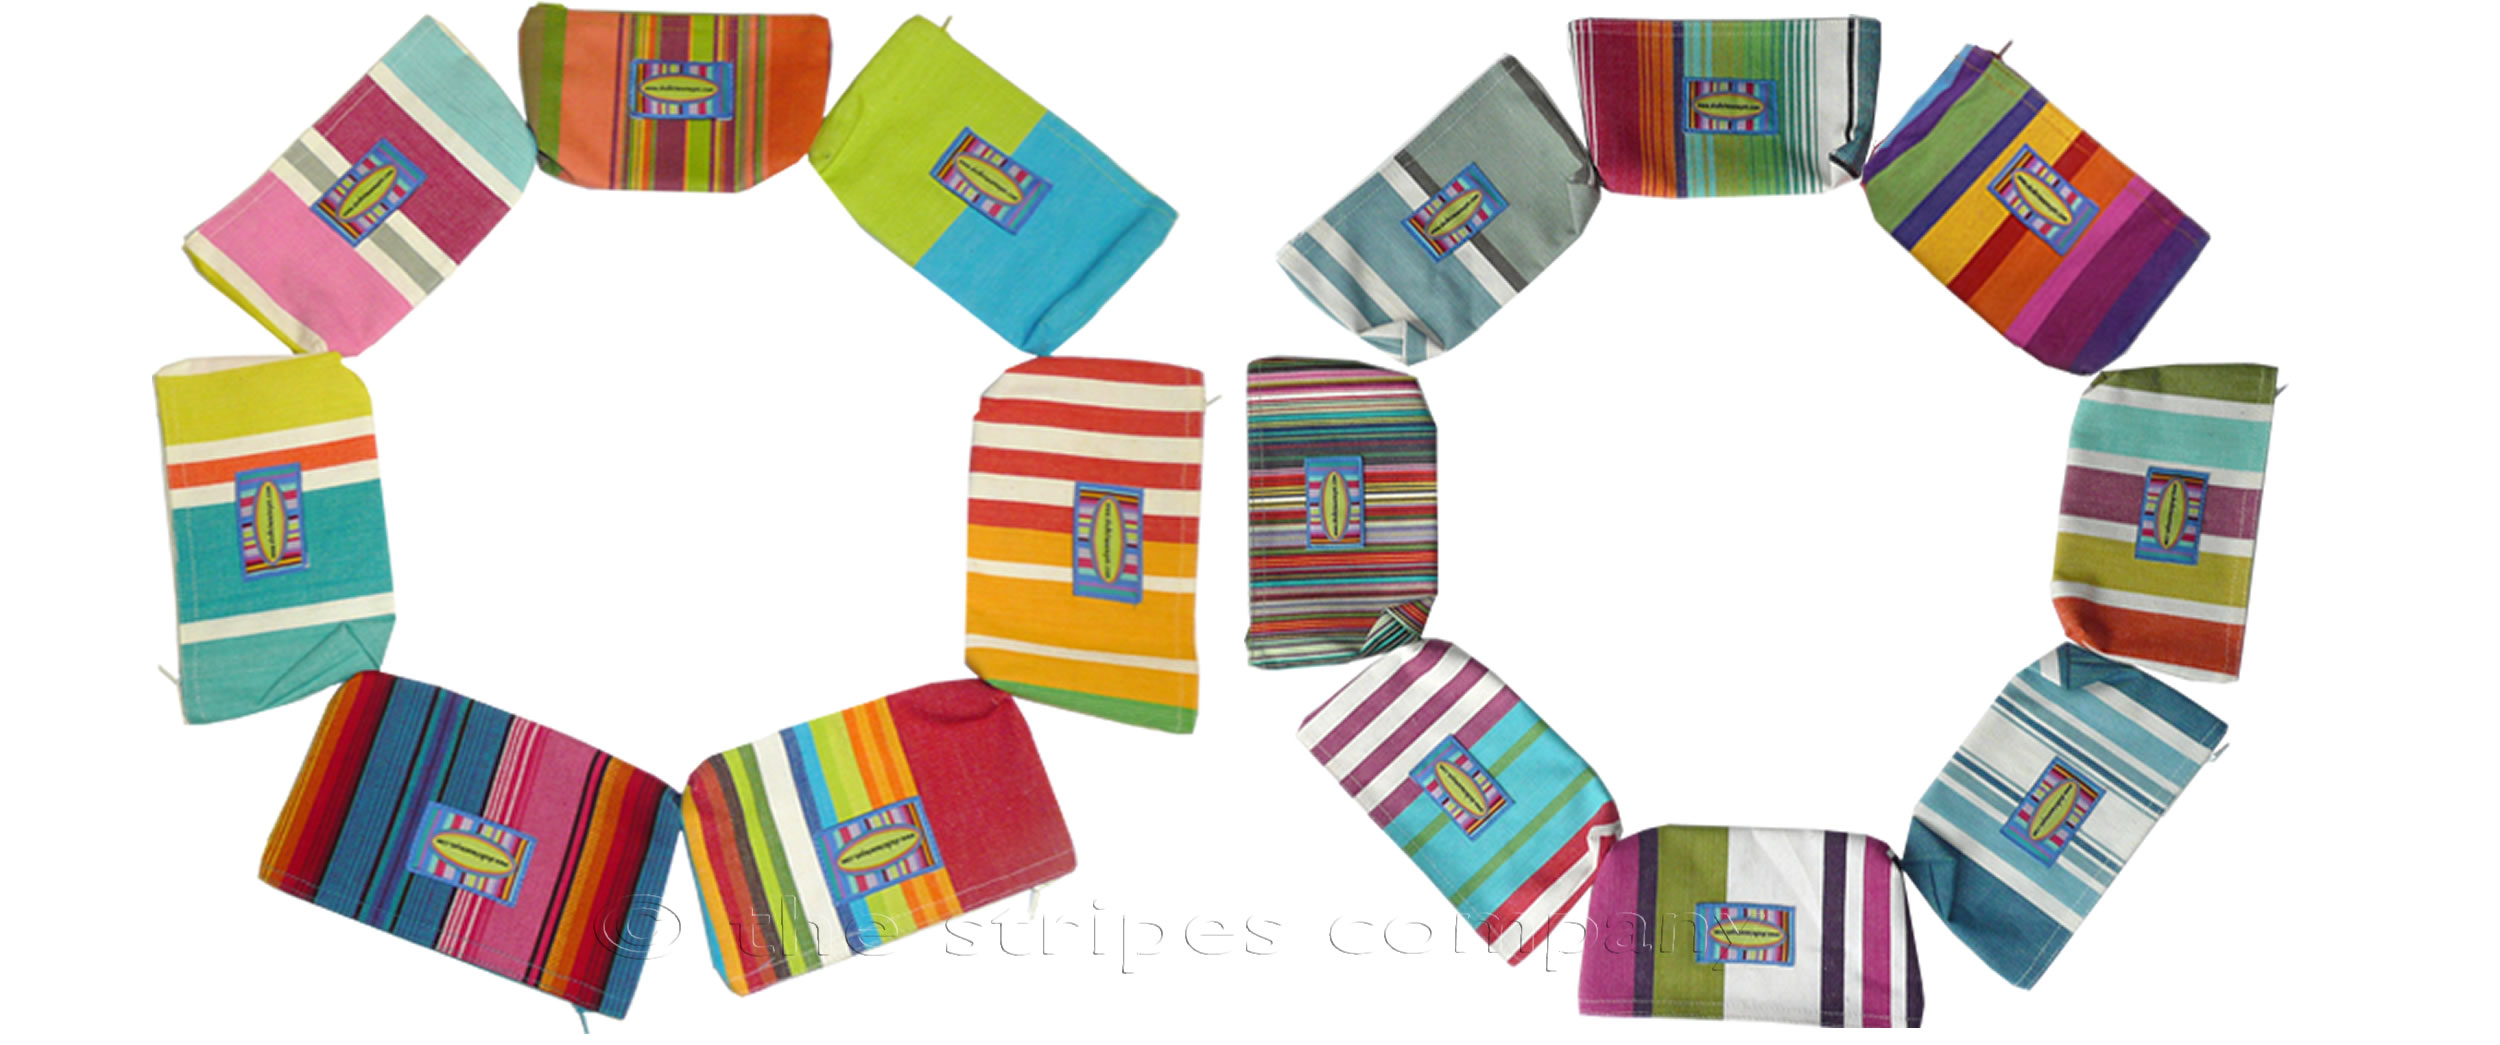 Striped Purses | Small Zipped Bags | Cosmetic Bags